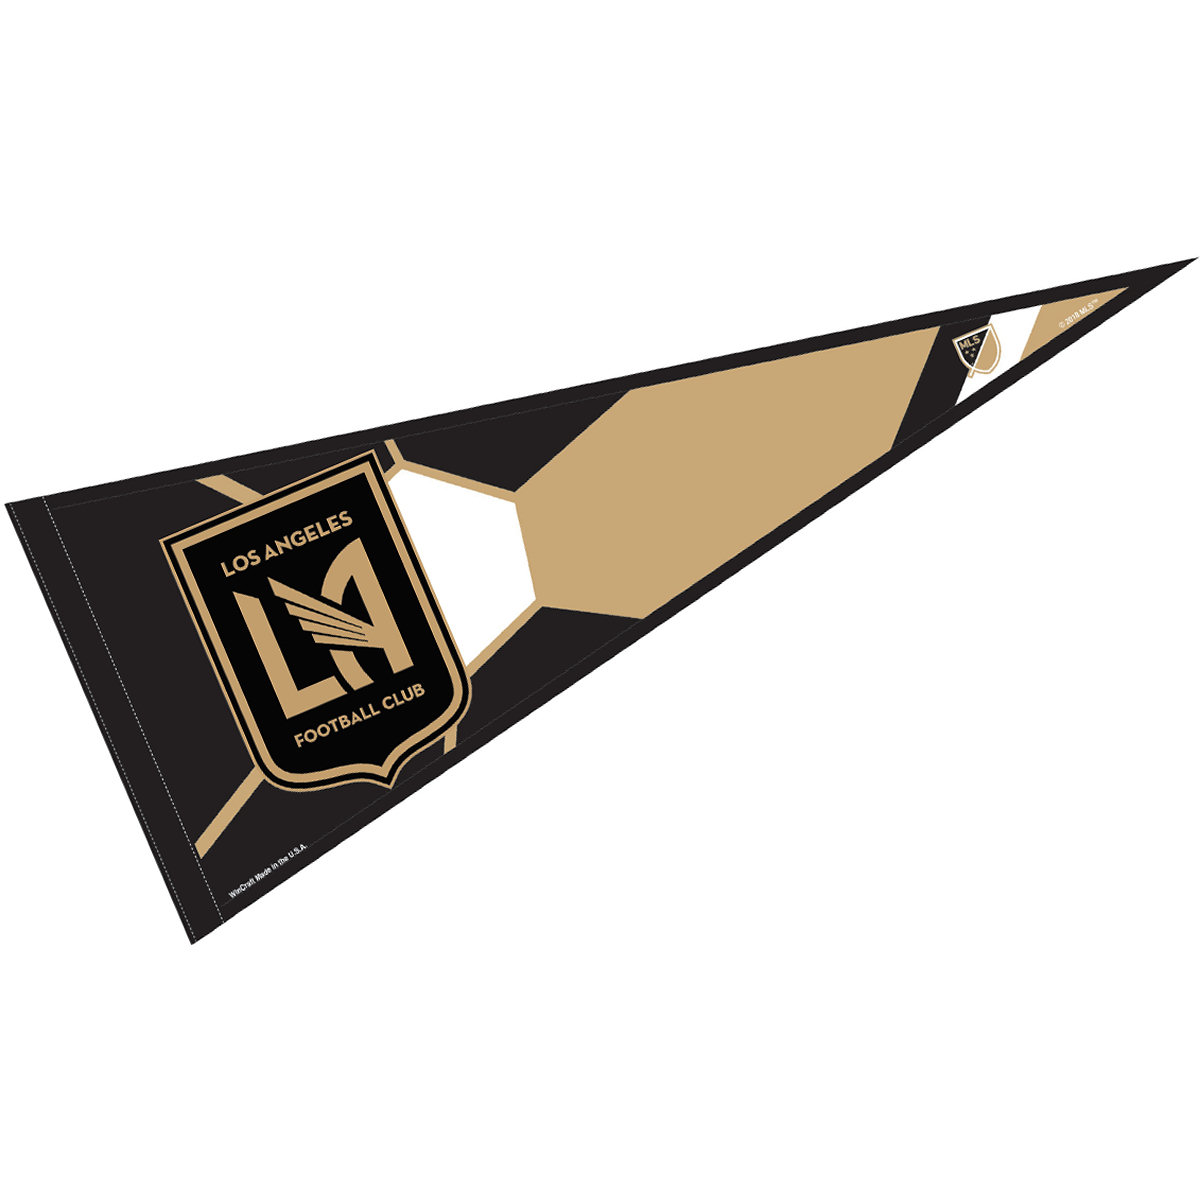 Los Angeles FC Full Size Pennant